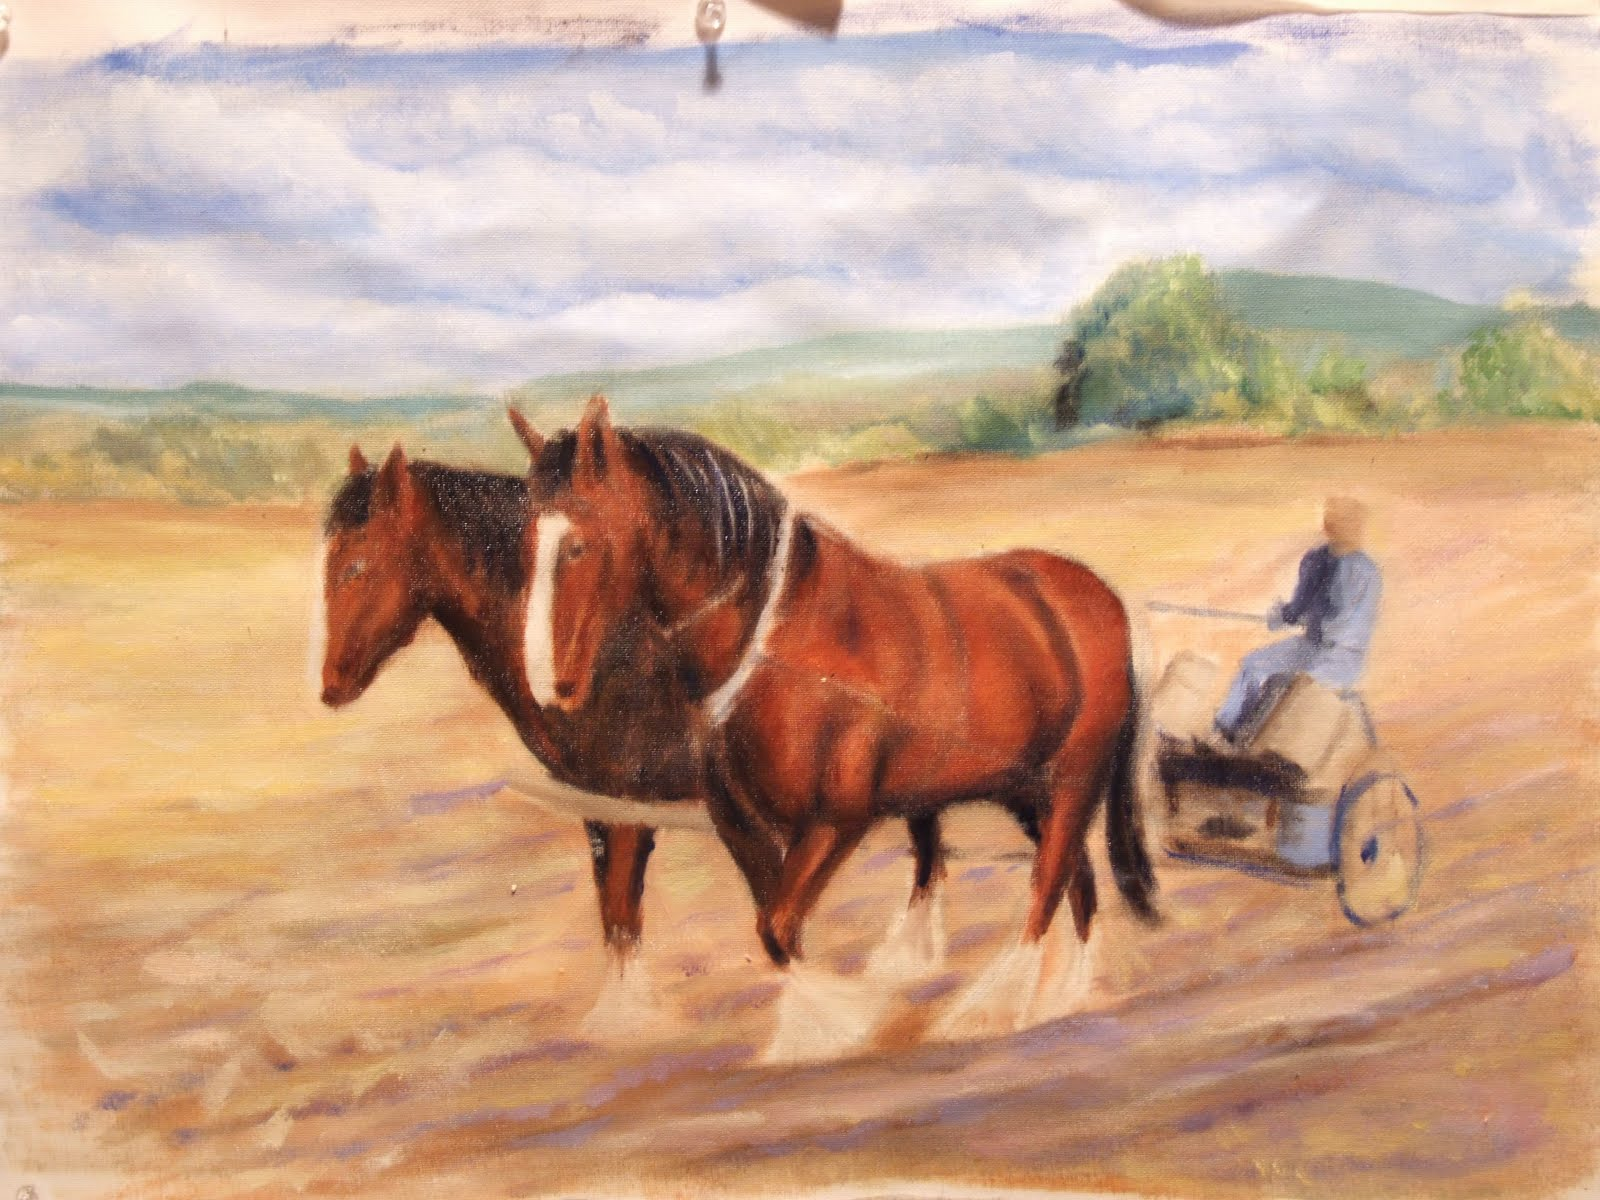 Plough horse oil painting step 7 